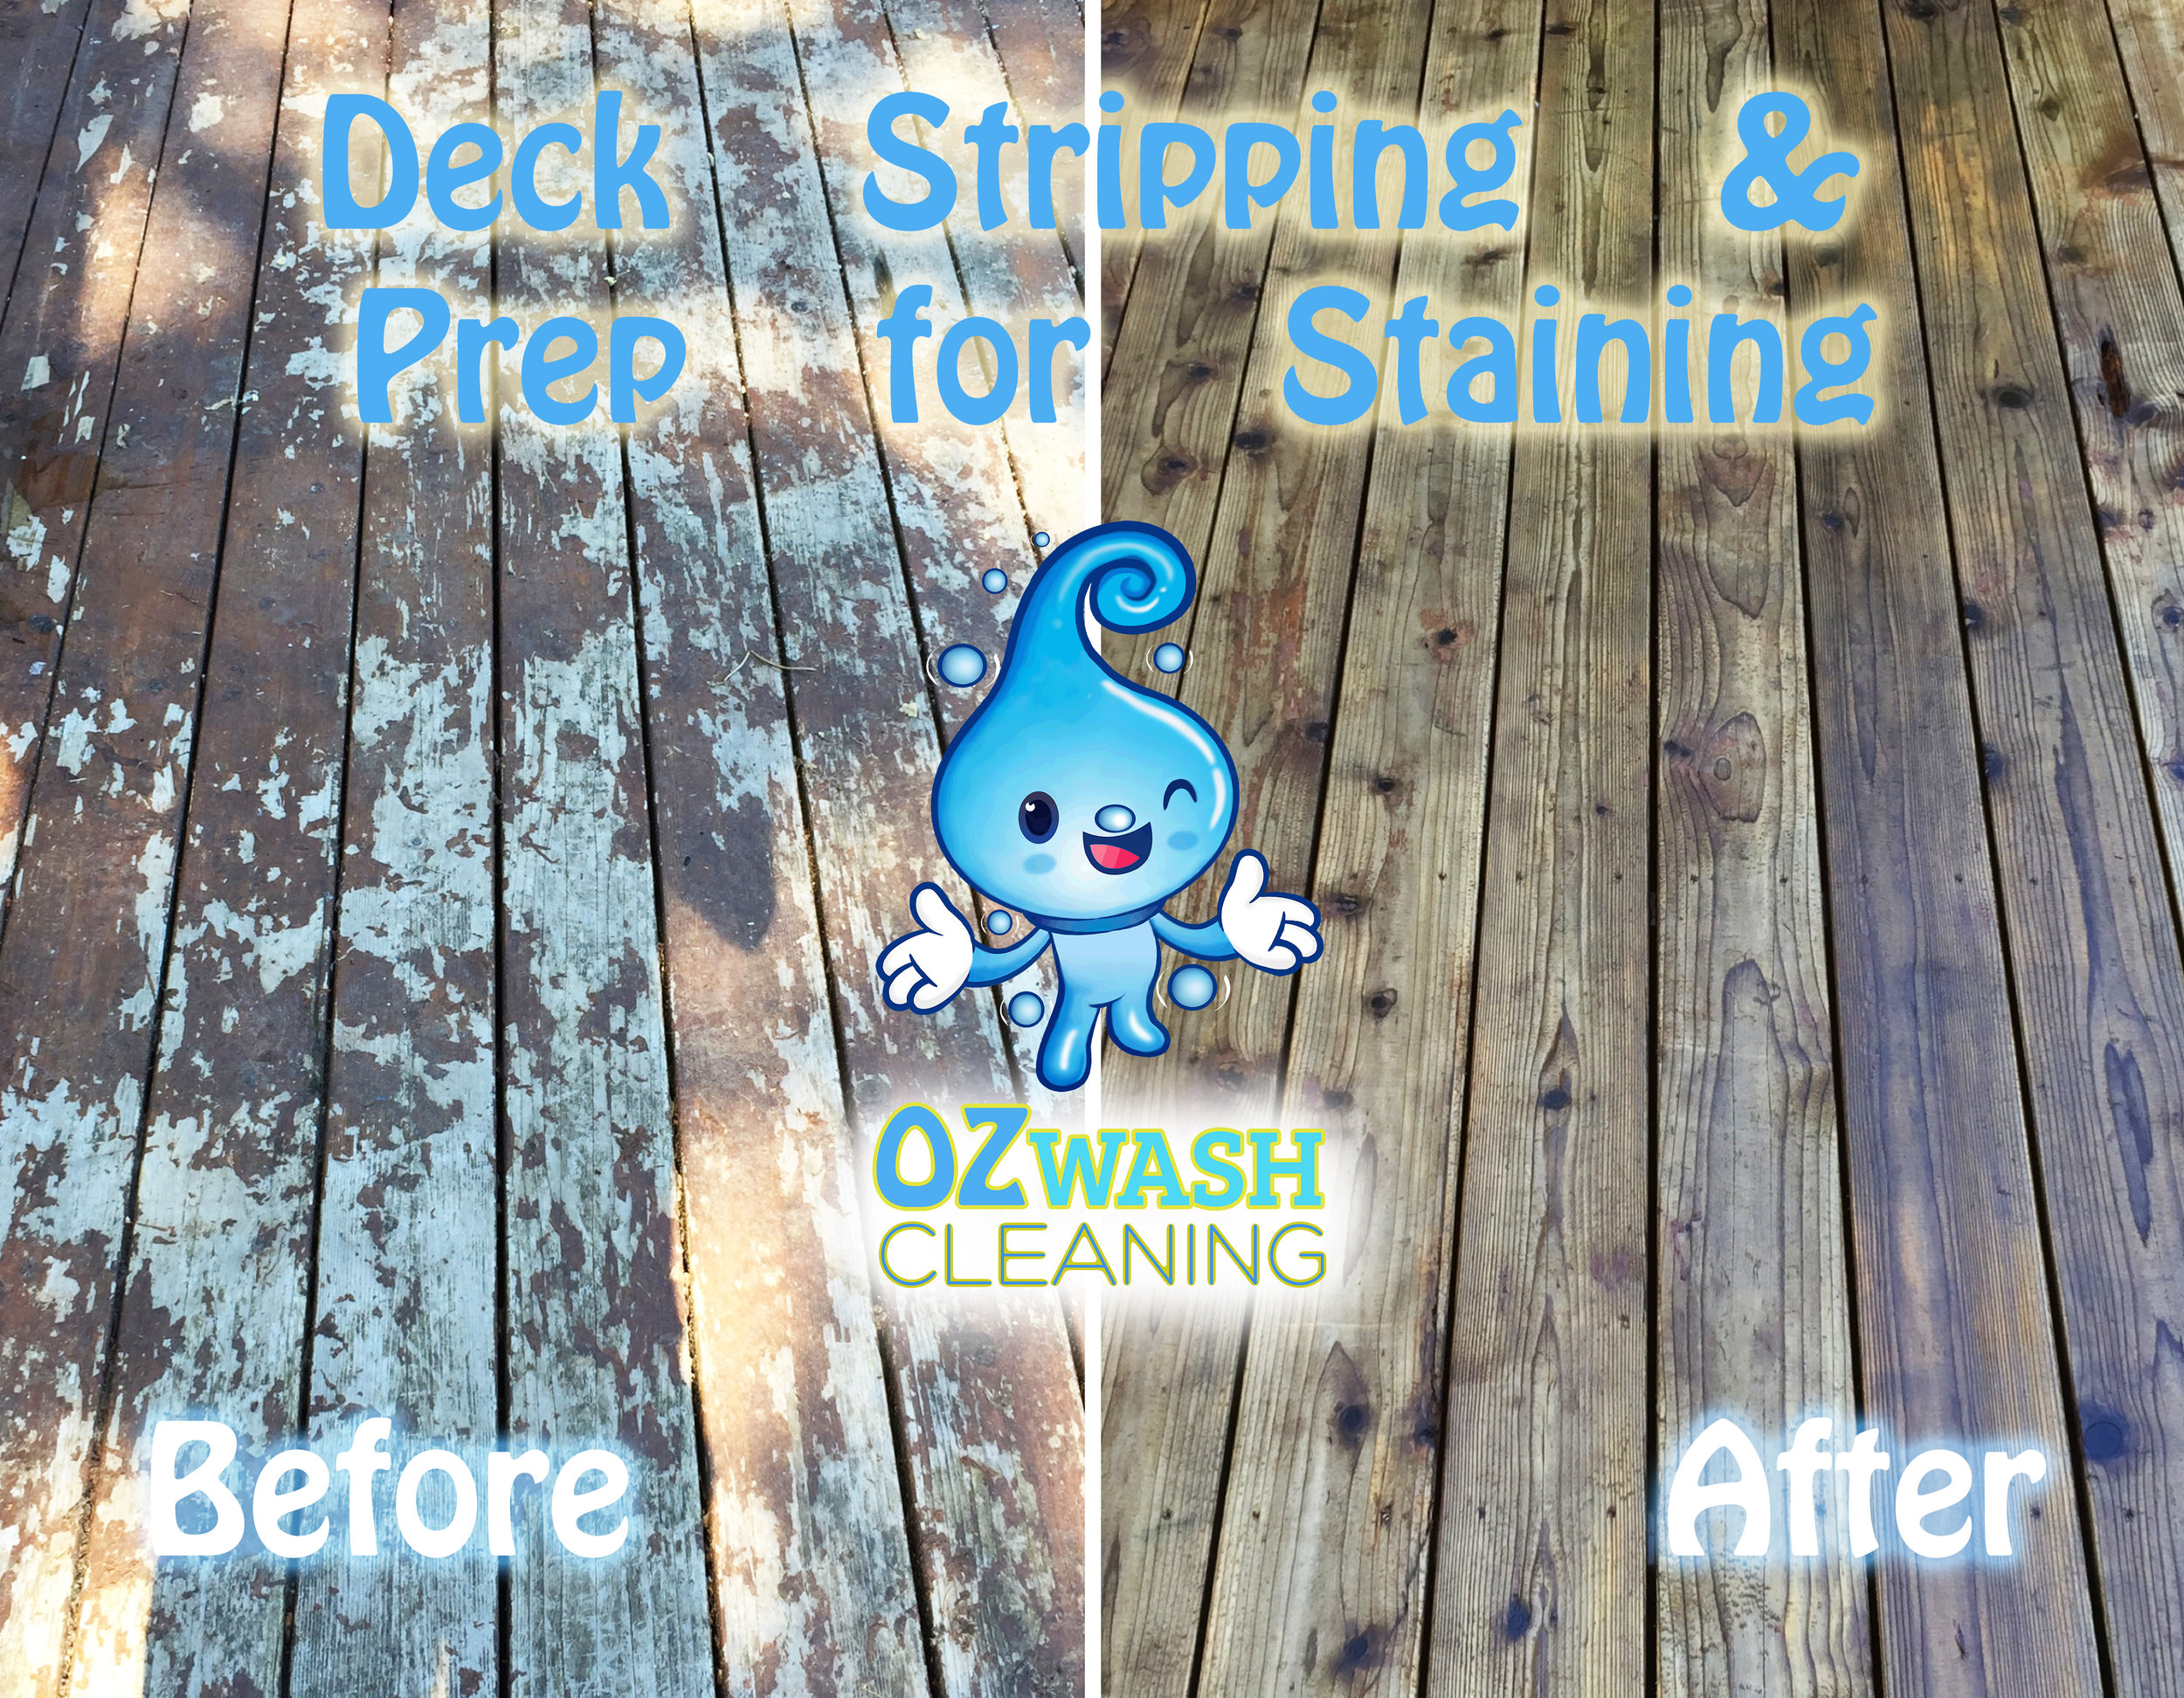 DeckReviving&Staining8.jpg